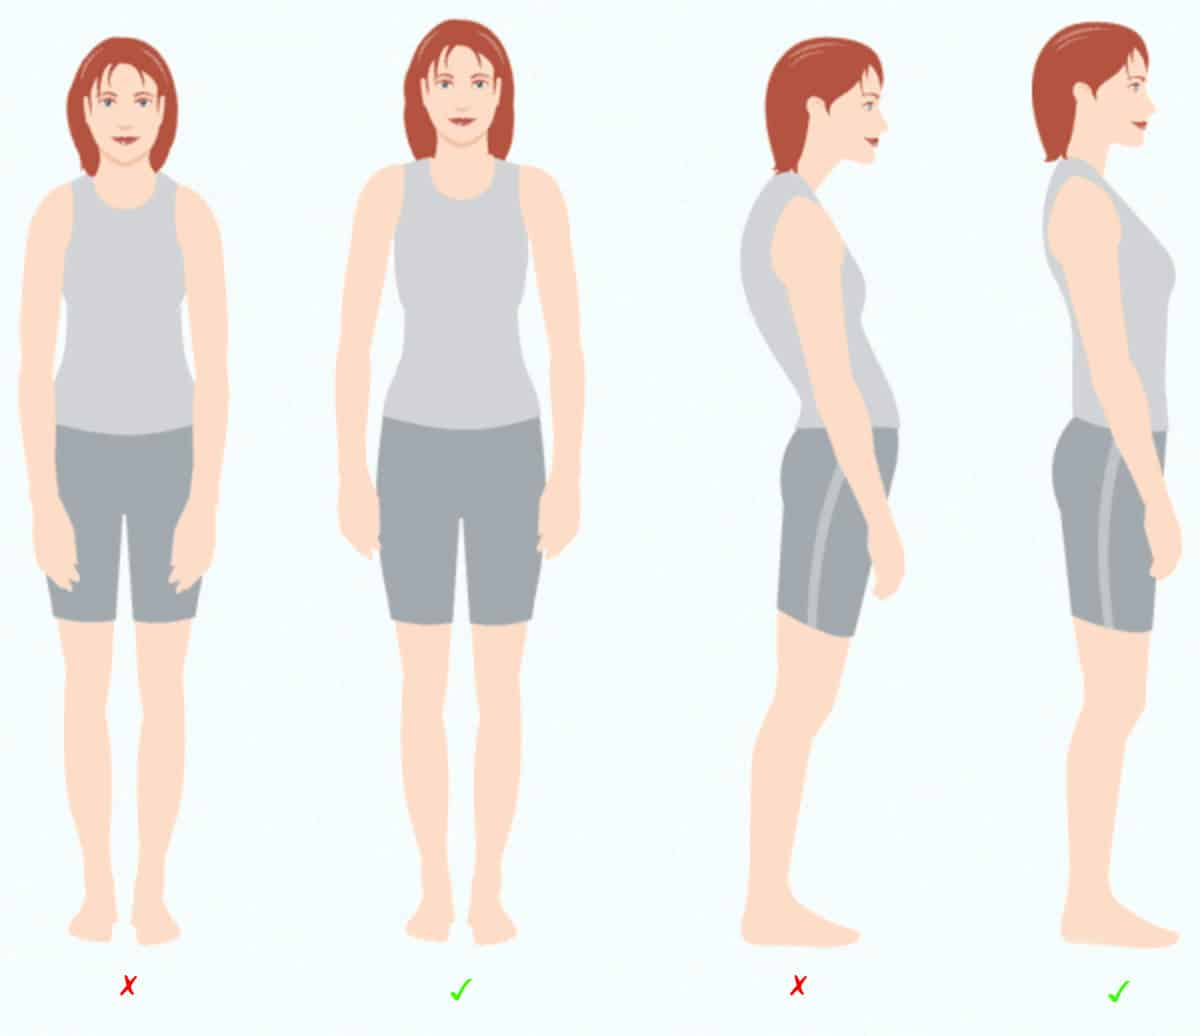 Right and Wrong postures of standing